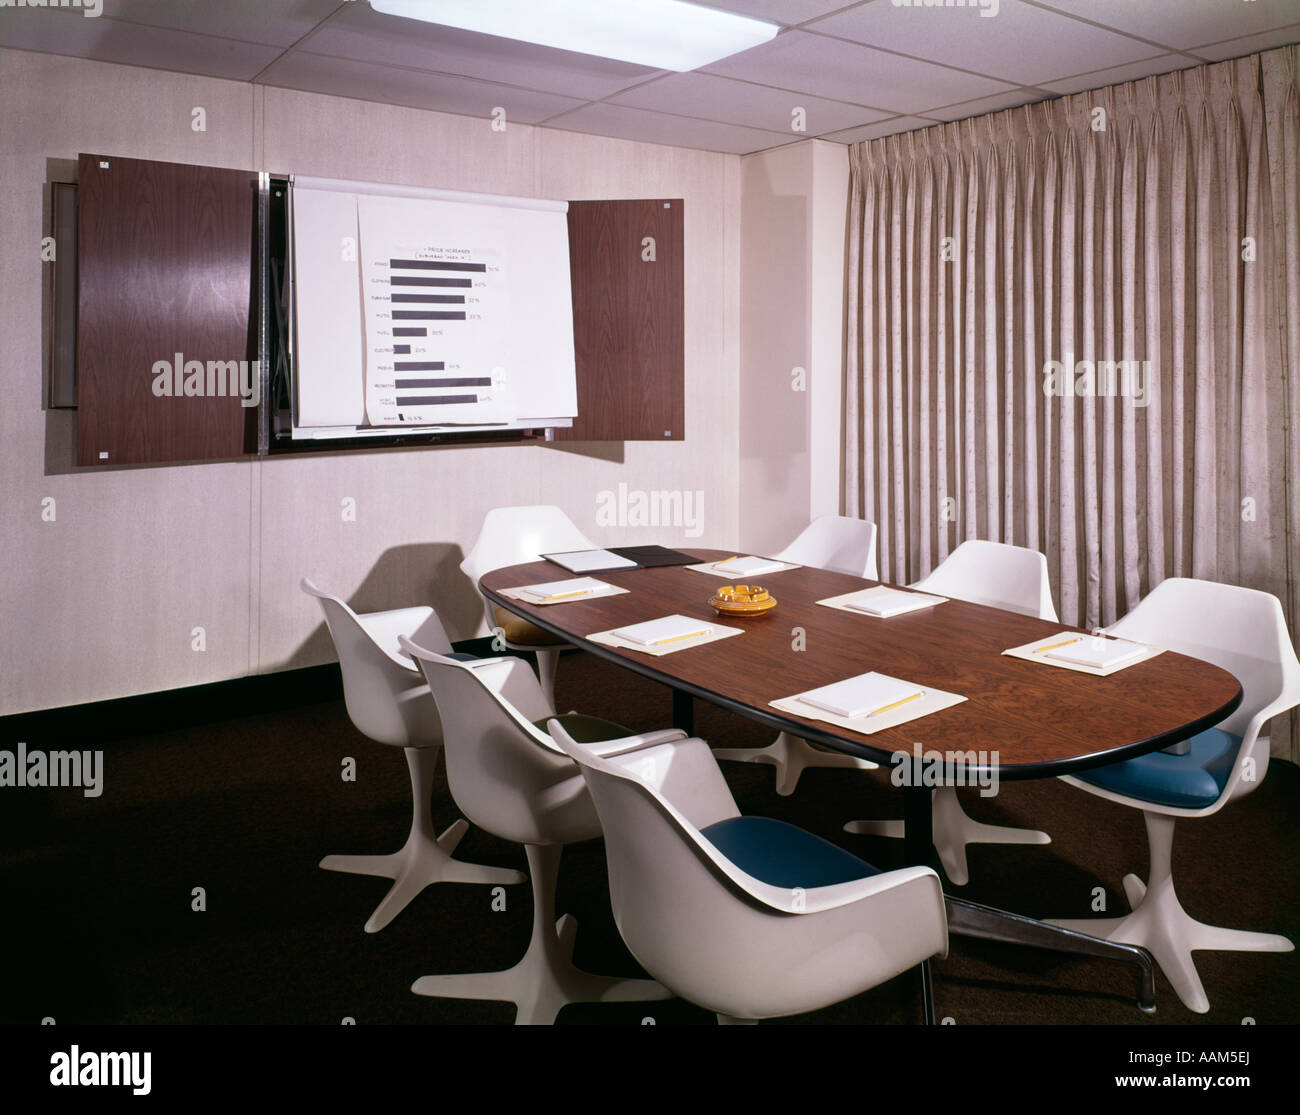 S OFFICE CONFERENCE ROOM WITH TABLE CHAIRS WRITING PADS AND WALL - Conference table pads